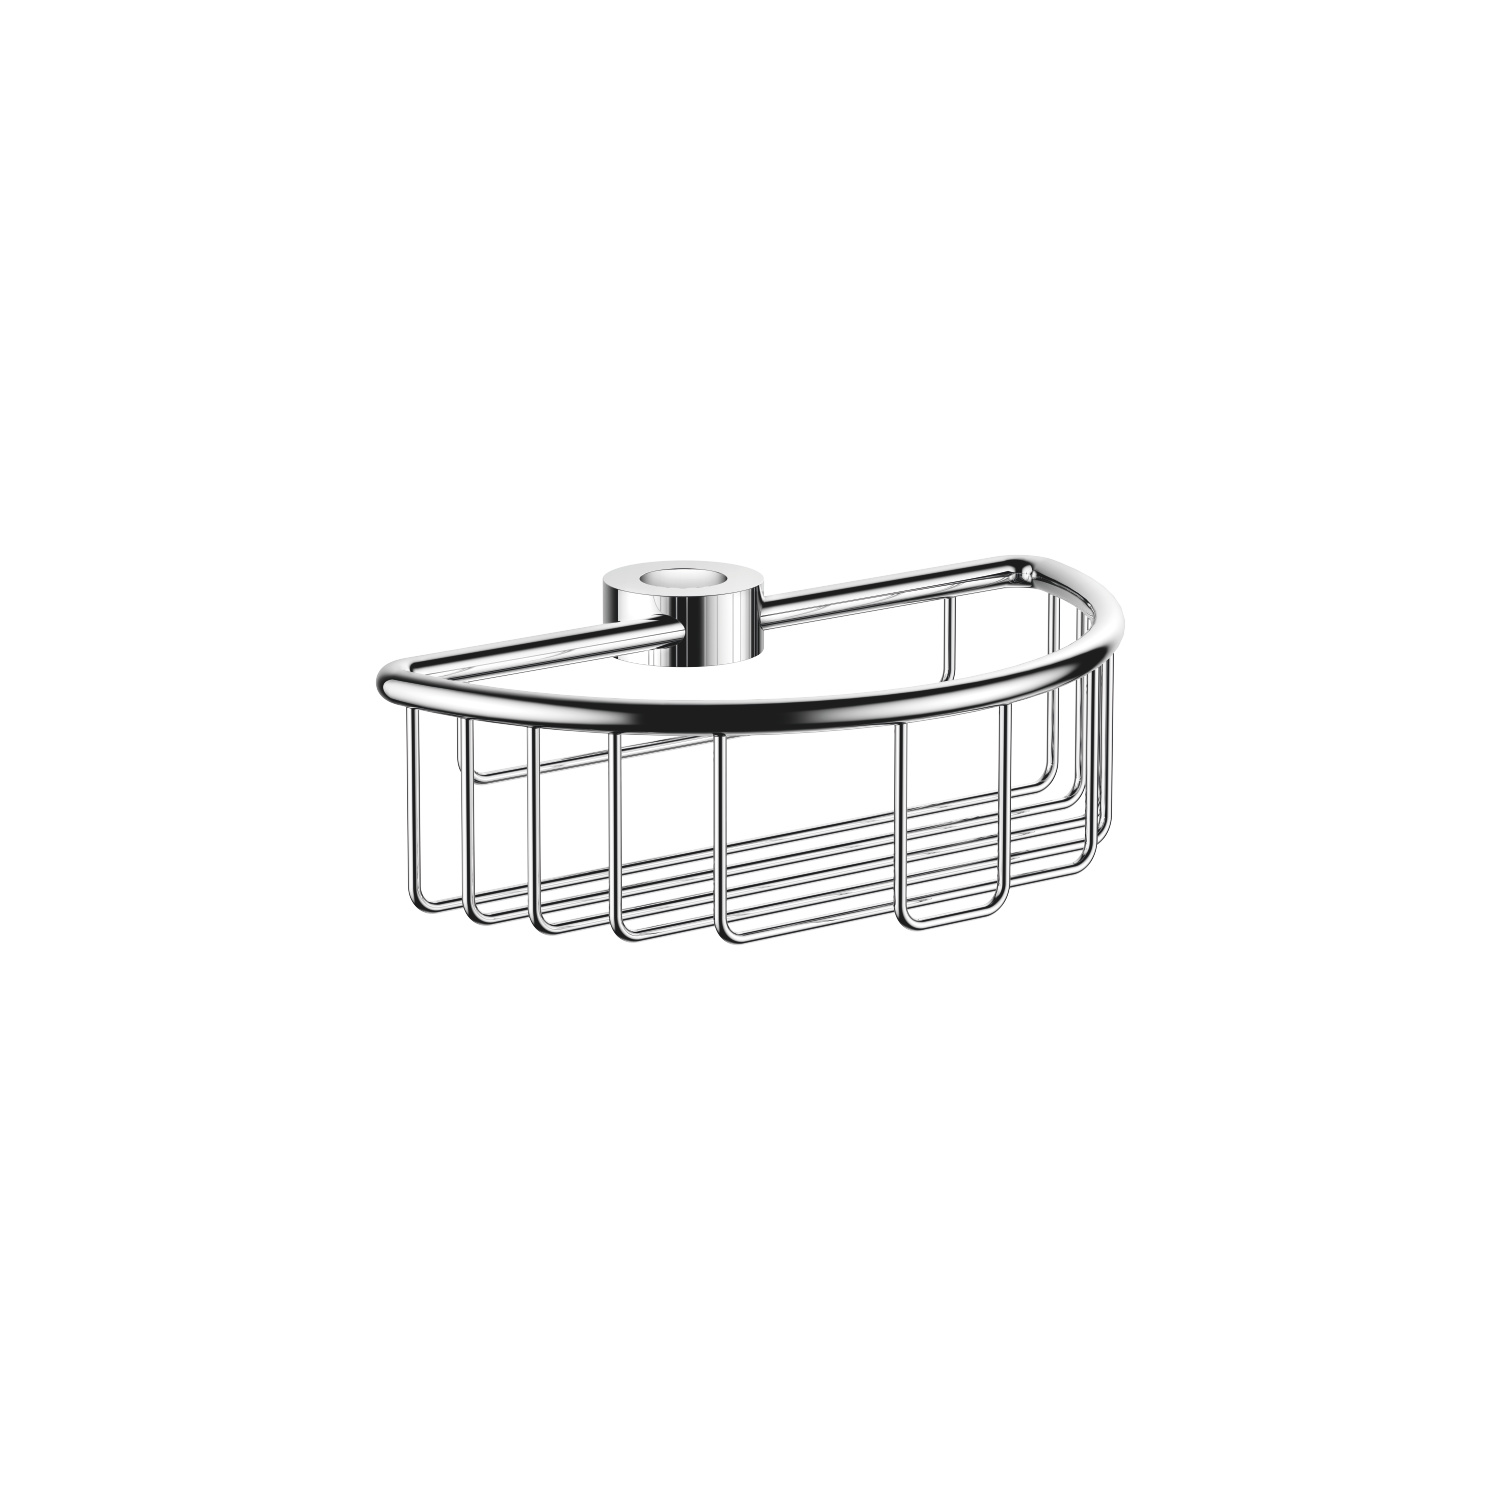 Shower basket for subsequent mounting on riser - polished chrome